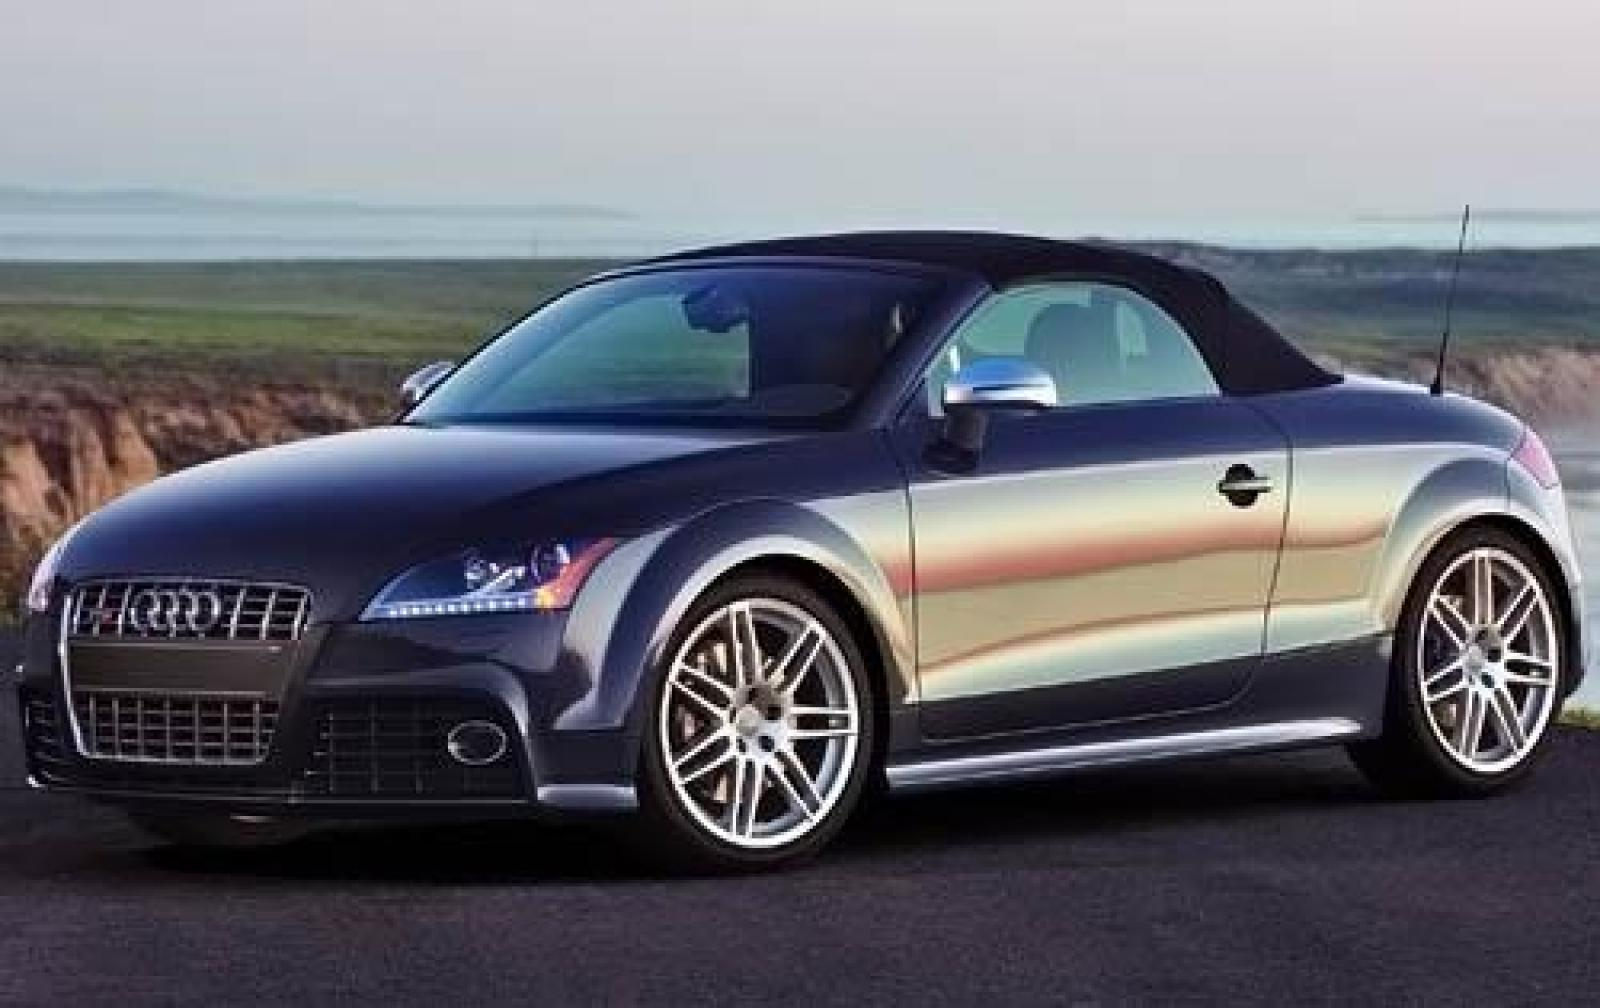 2010 audi tts information and photos zombiedrive. Black Bedroom Furniture Sets. Home Design Ideas